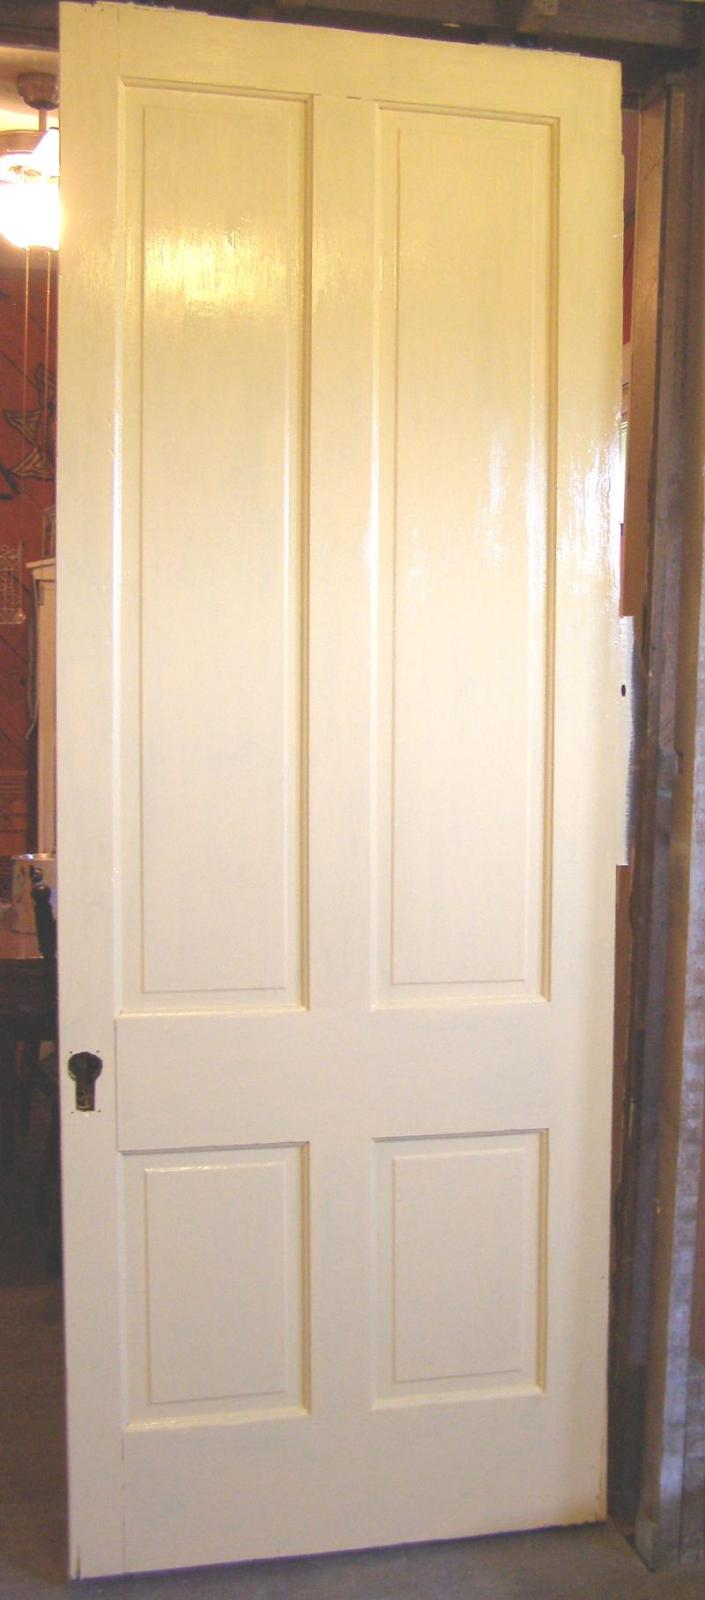 right door painted.jpg